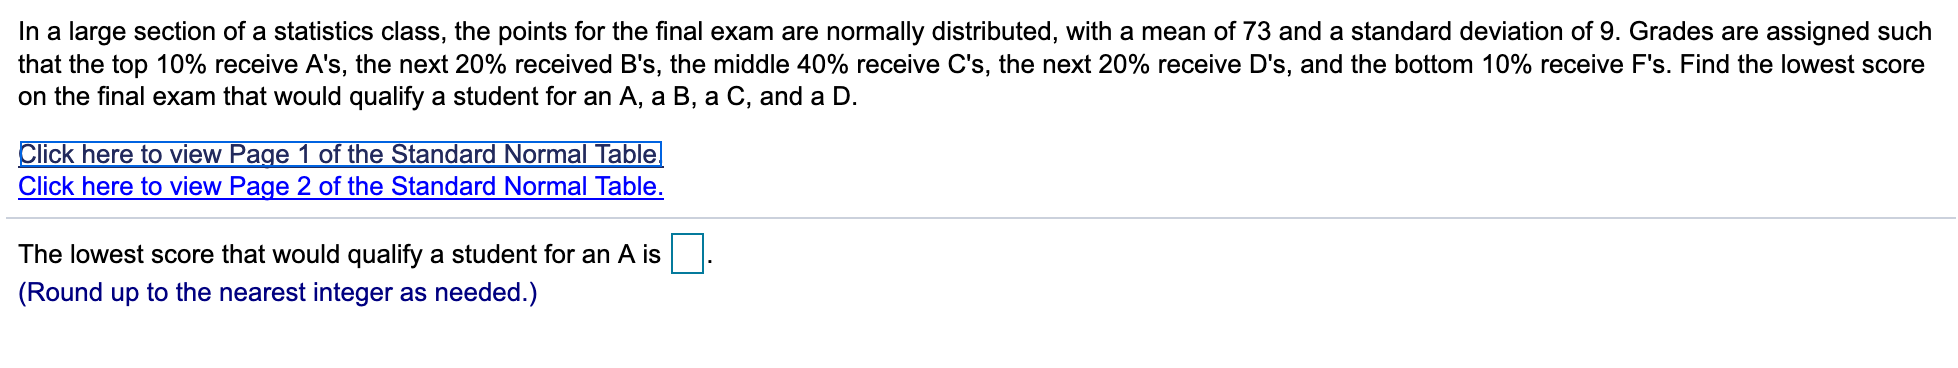 In a large section of a statistics class, the points for the final exam are normally distributed, with a mean of 73 and a standard deviation of 9. Grades are assigned such that the top 10% receive A's, the next 20% received B's, the middle 40% receive C's, the next 20% receive D's , and the bottom 10% receive F's. Find the lowest score on the final exam that would qualify a student for an A, a B, a C, and a D. Click here to view Page 1 of the Standard Normal Table Click here to view Page 2 of the Standard Normal Table. The lowest score that would qualify a student for an A is (Round up to the nearest integer as needed.)